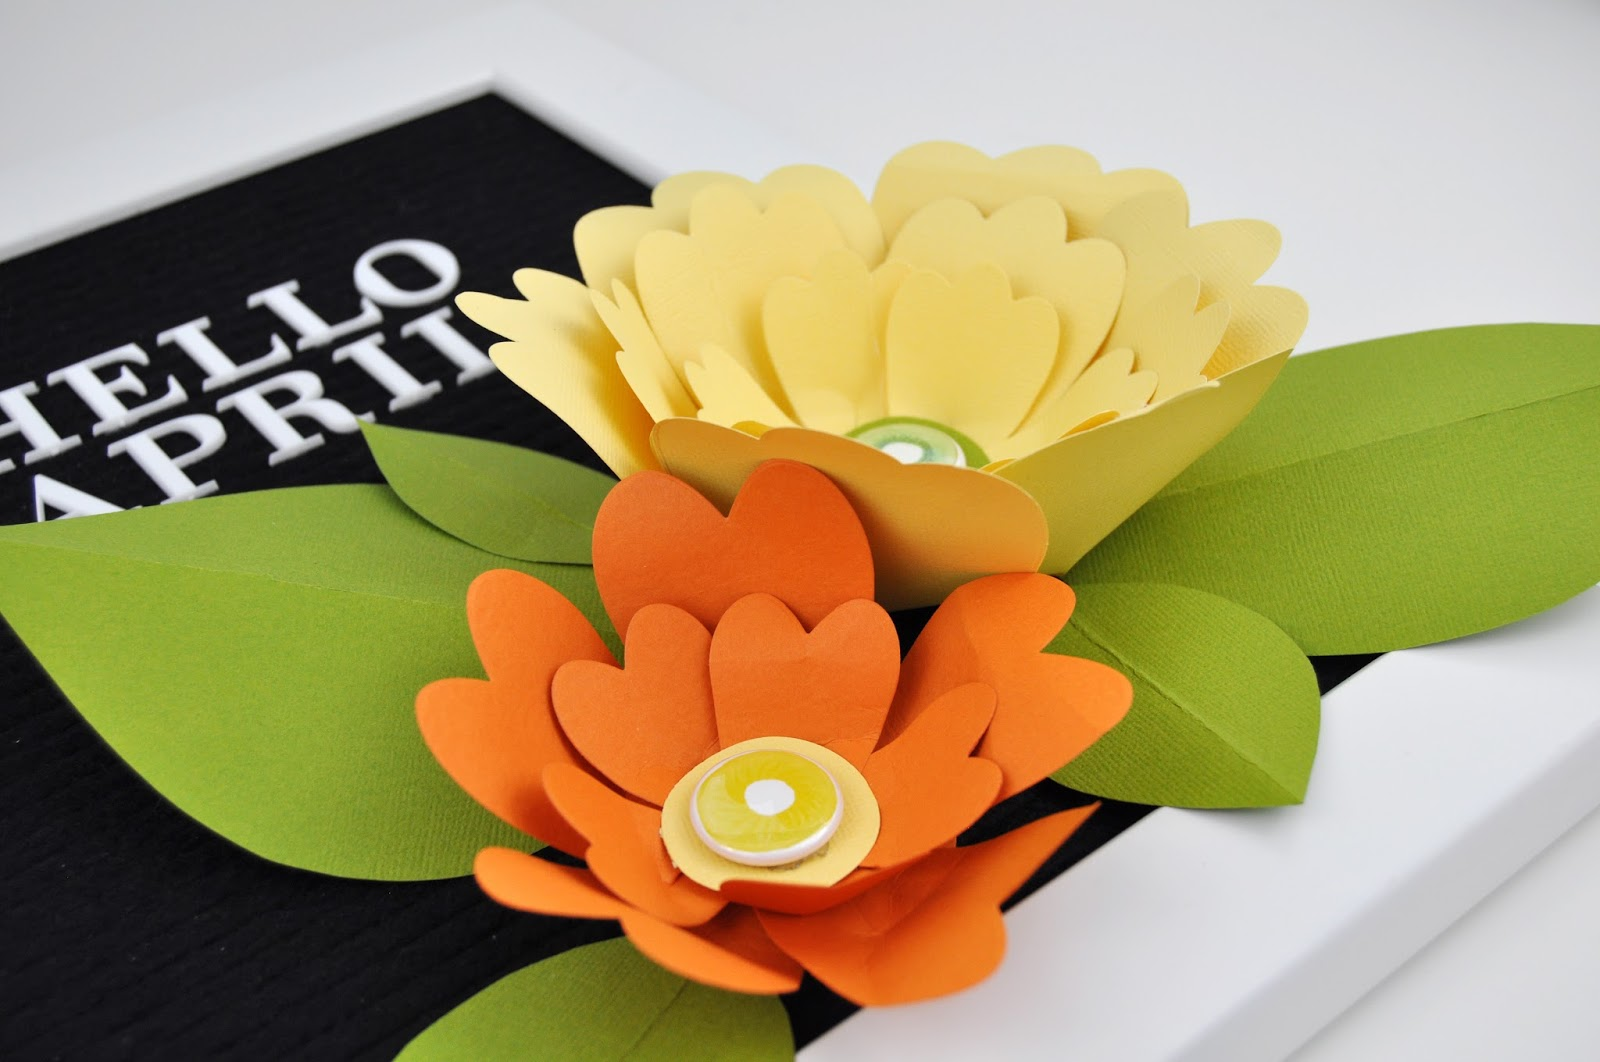 Letterboard Paper Flowers tutorial by Jen Gallacher from www.jengallacher.com for A Flair for Badges. How to create paper flowers for a letterboard. How to die cut and layer paper flowers.